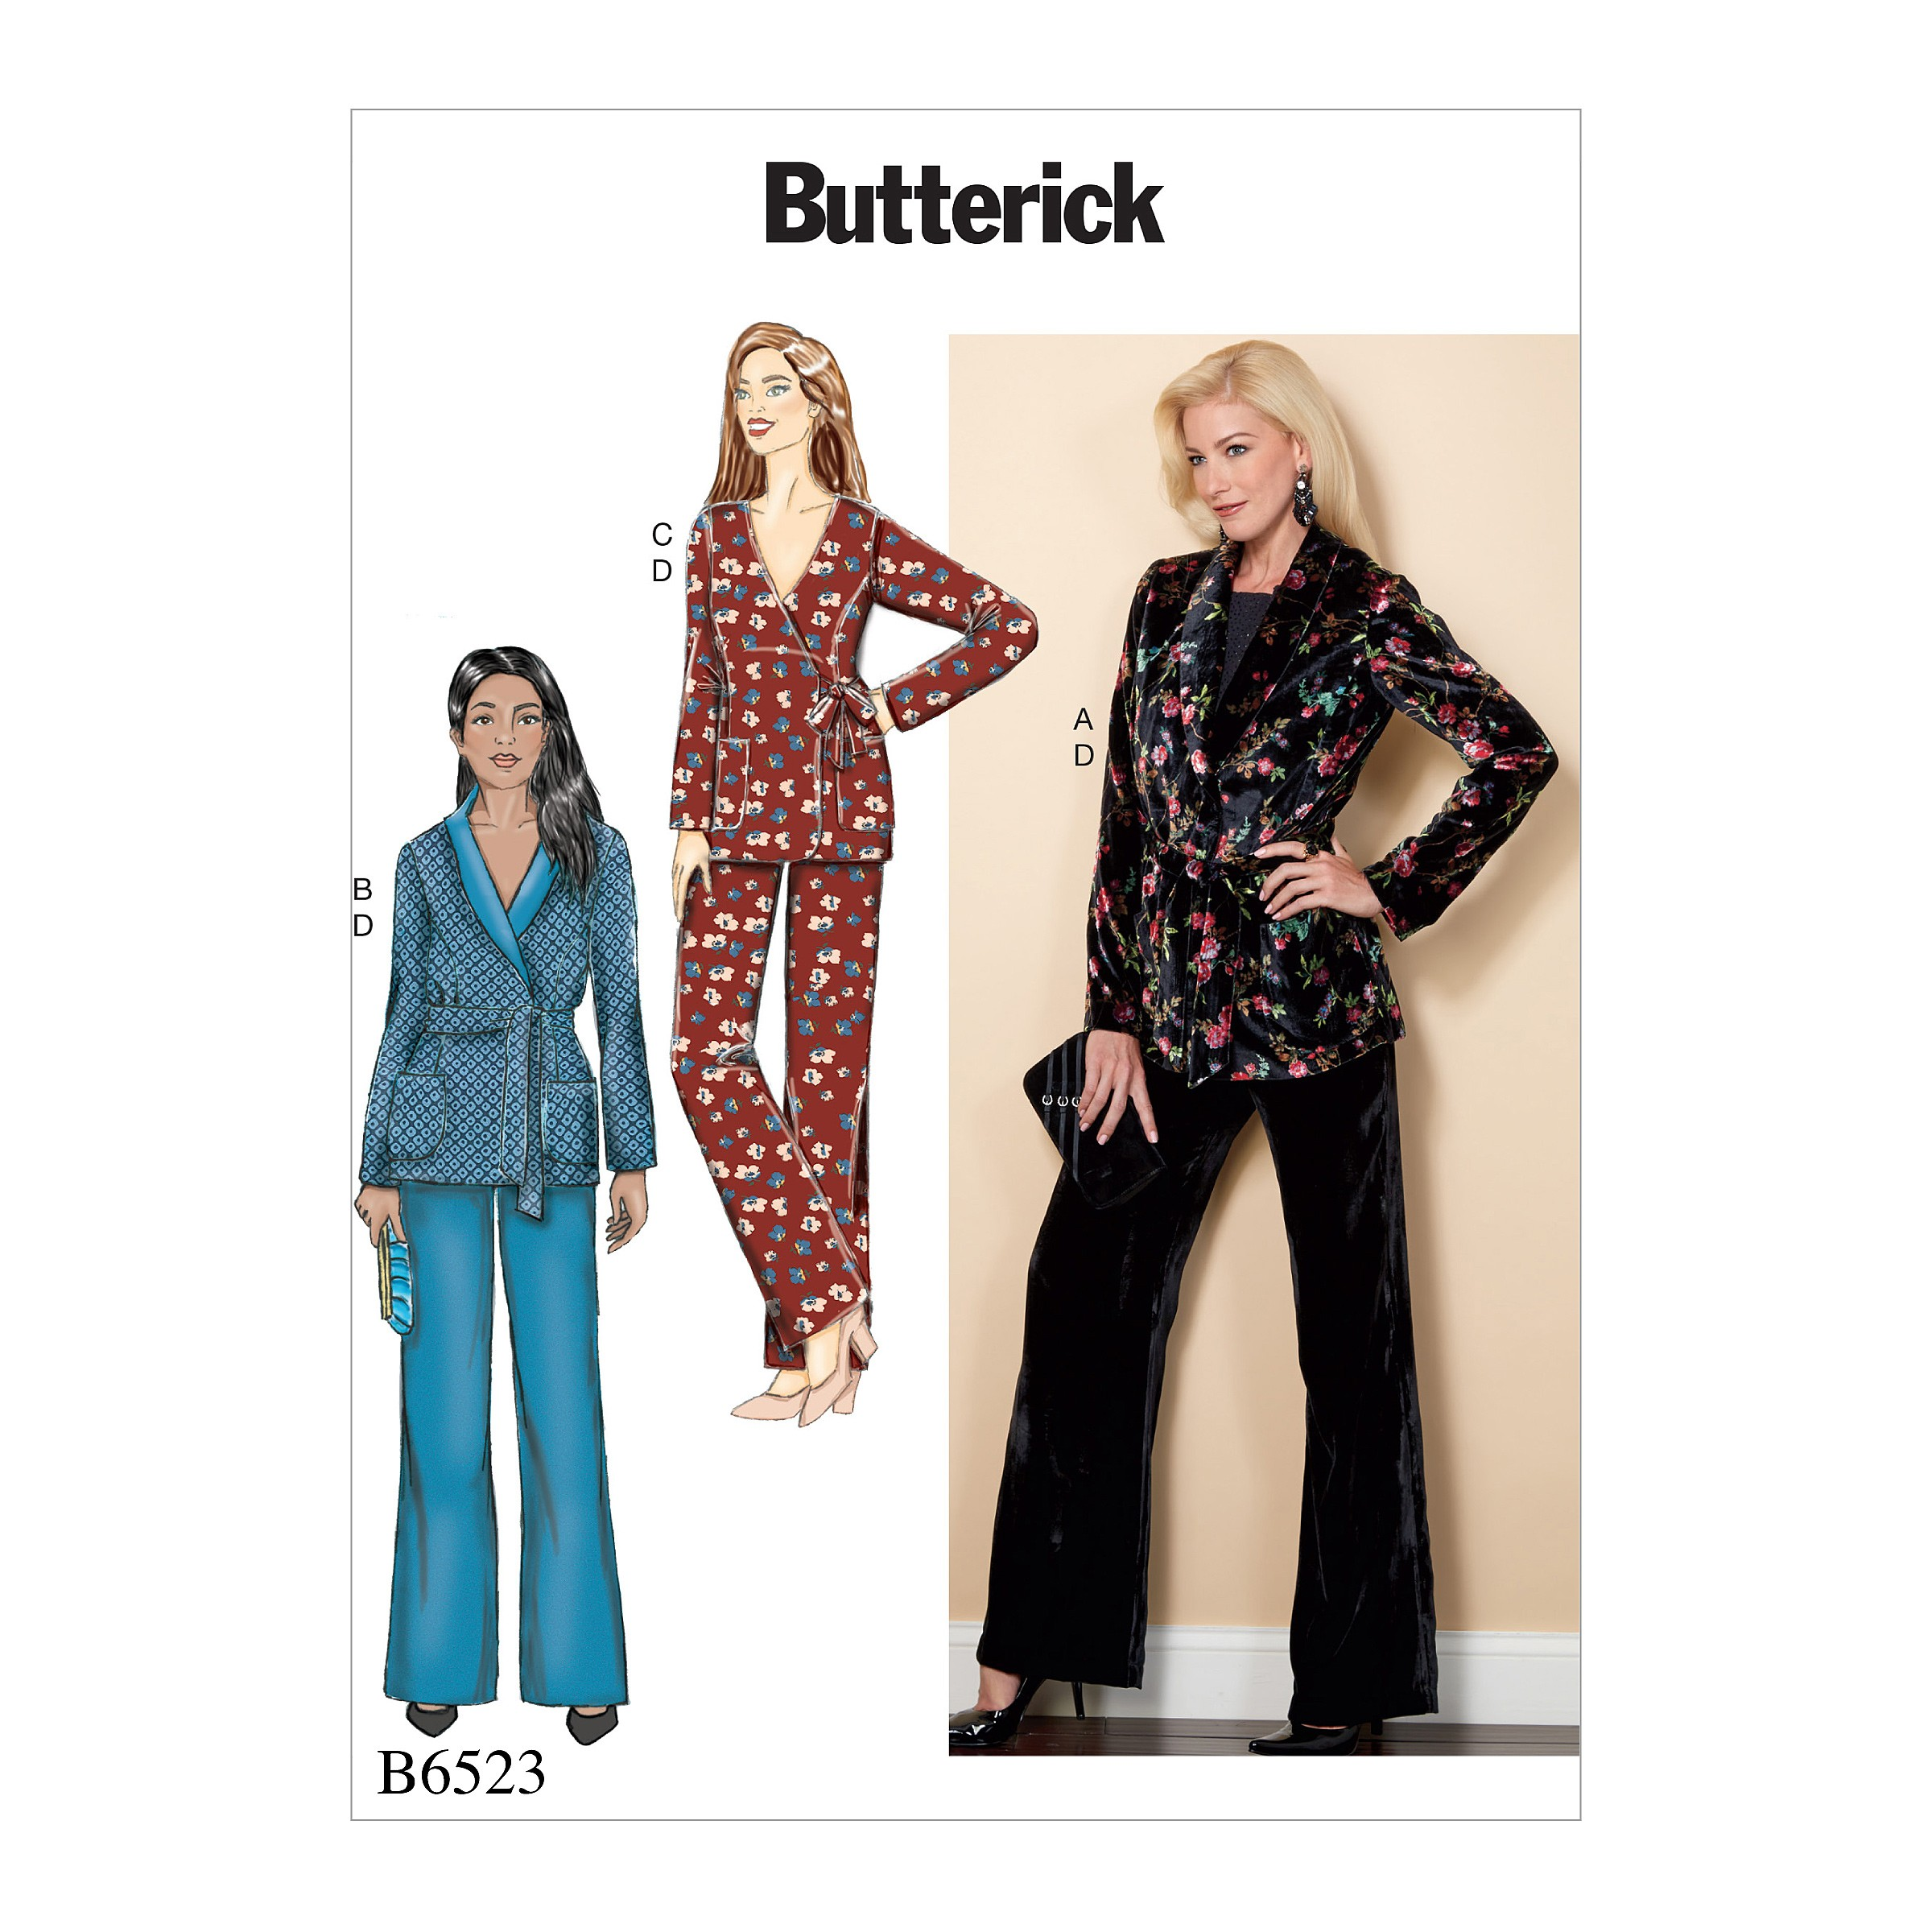 Butterick Sewing Pattern 6523 Misses' Jacket, Sash And Trousers